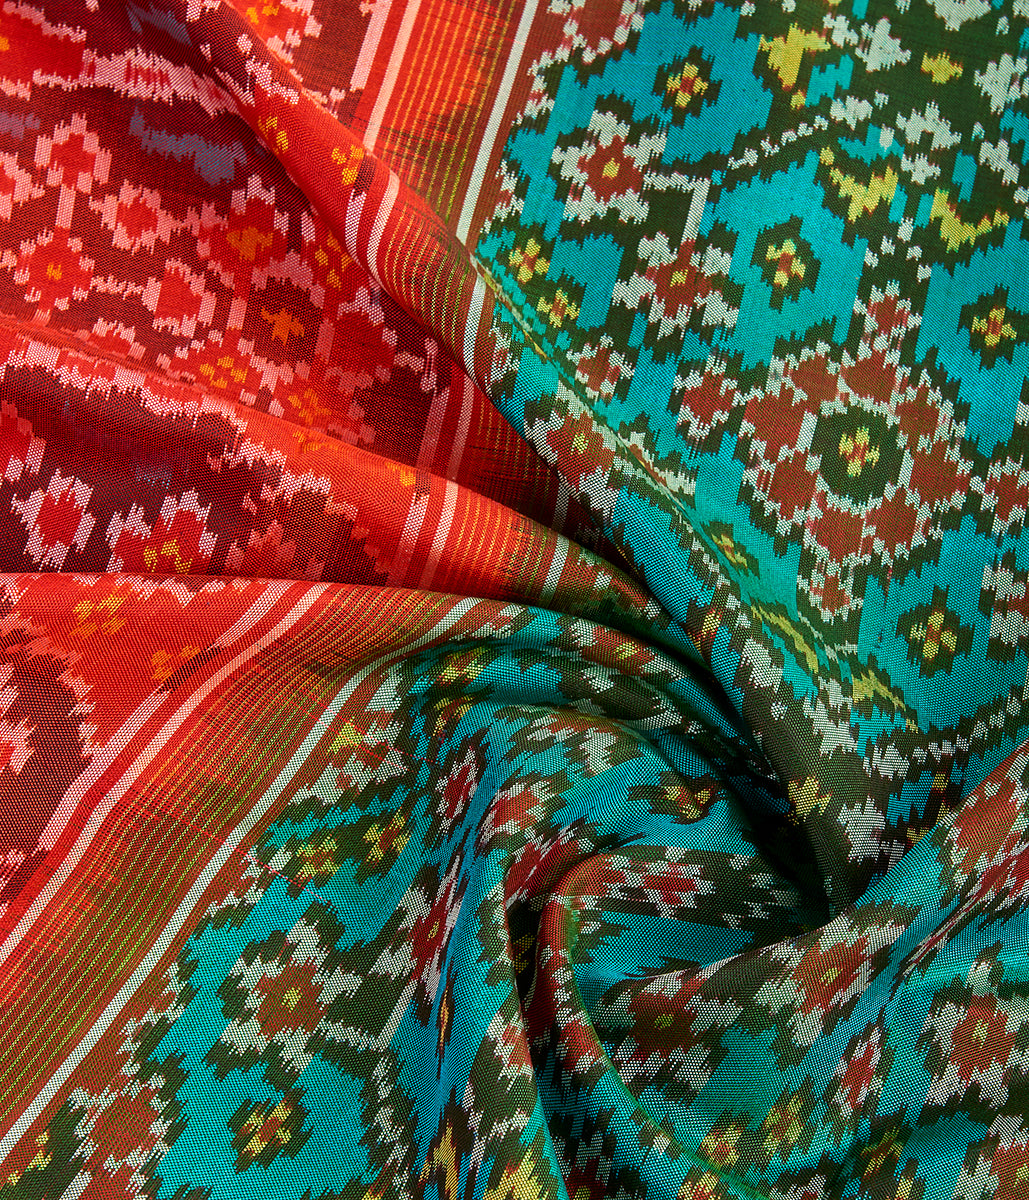 Handwoven Ikat Patola Dupatta in Turquoise and Red